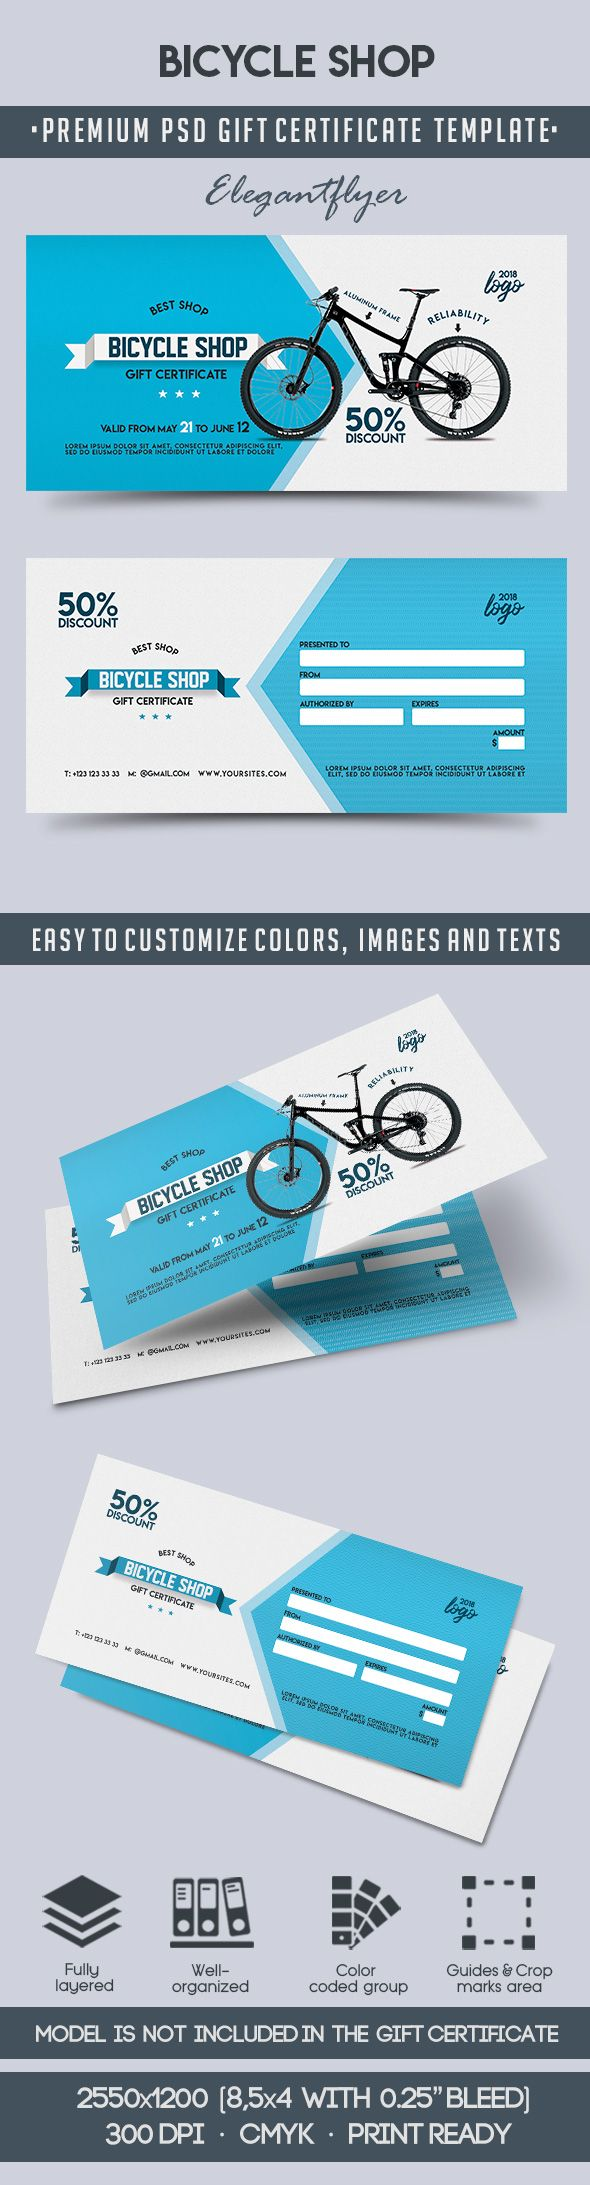 Bicycle Shop – Premium Gift Certificate PSD Template